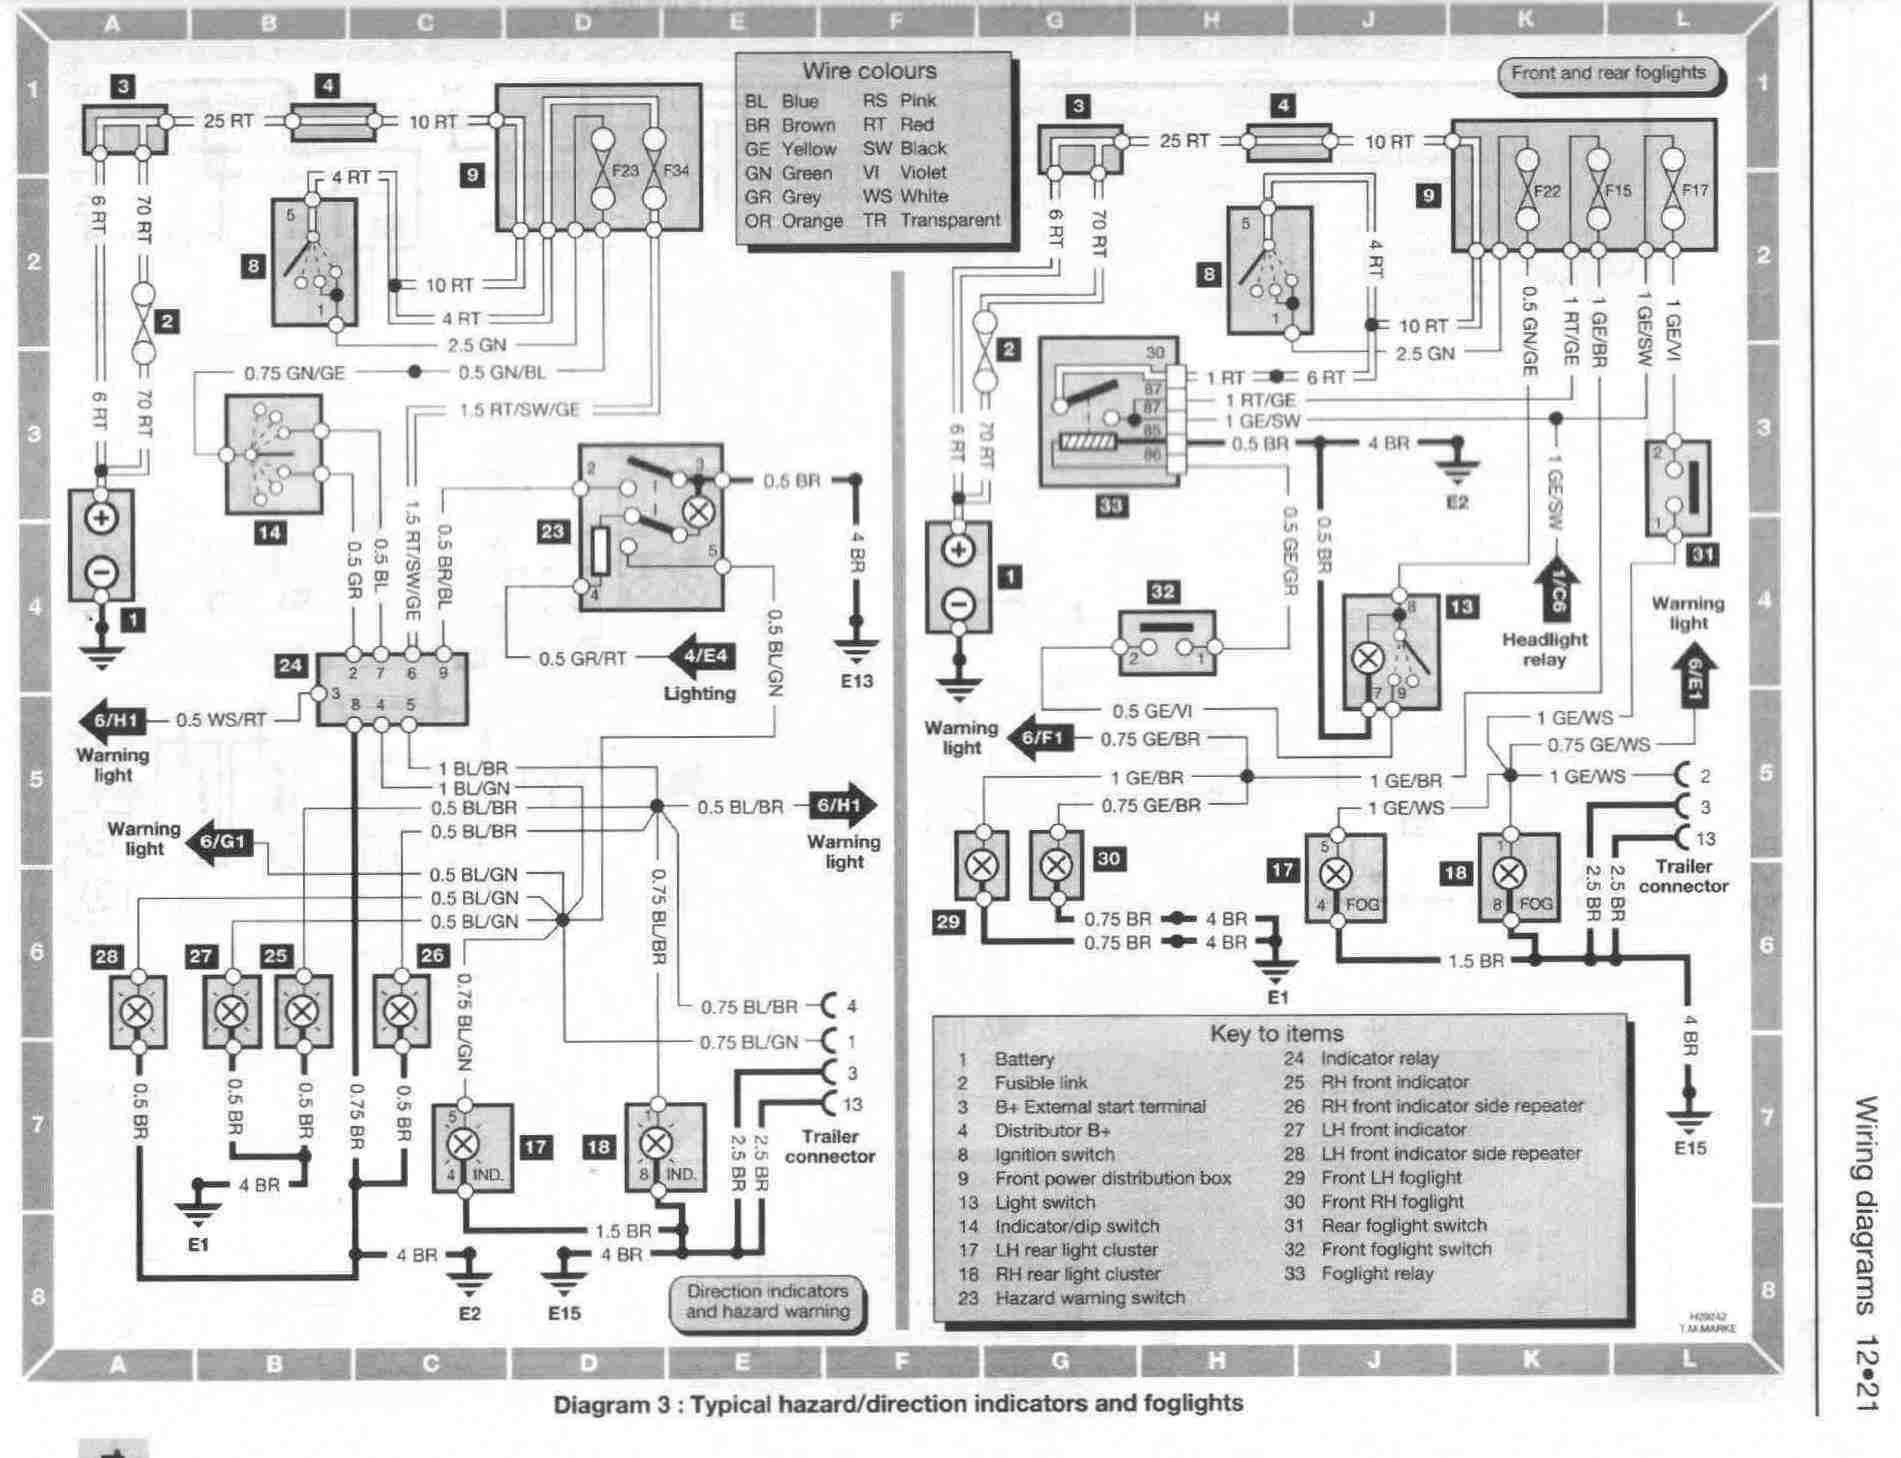 New Bmw E46 318i Wiring Diagram Pdf #diagram #